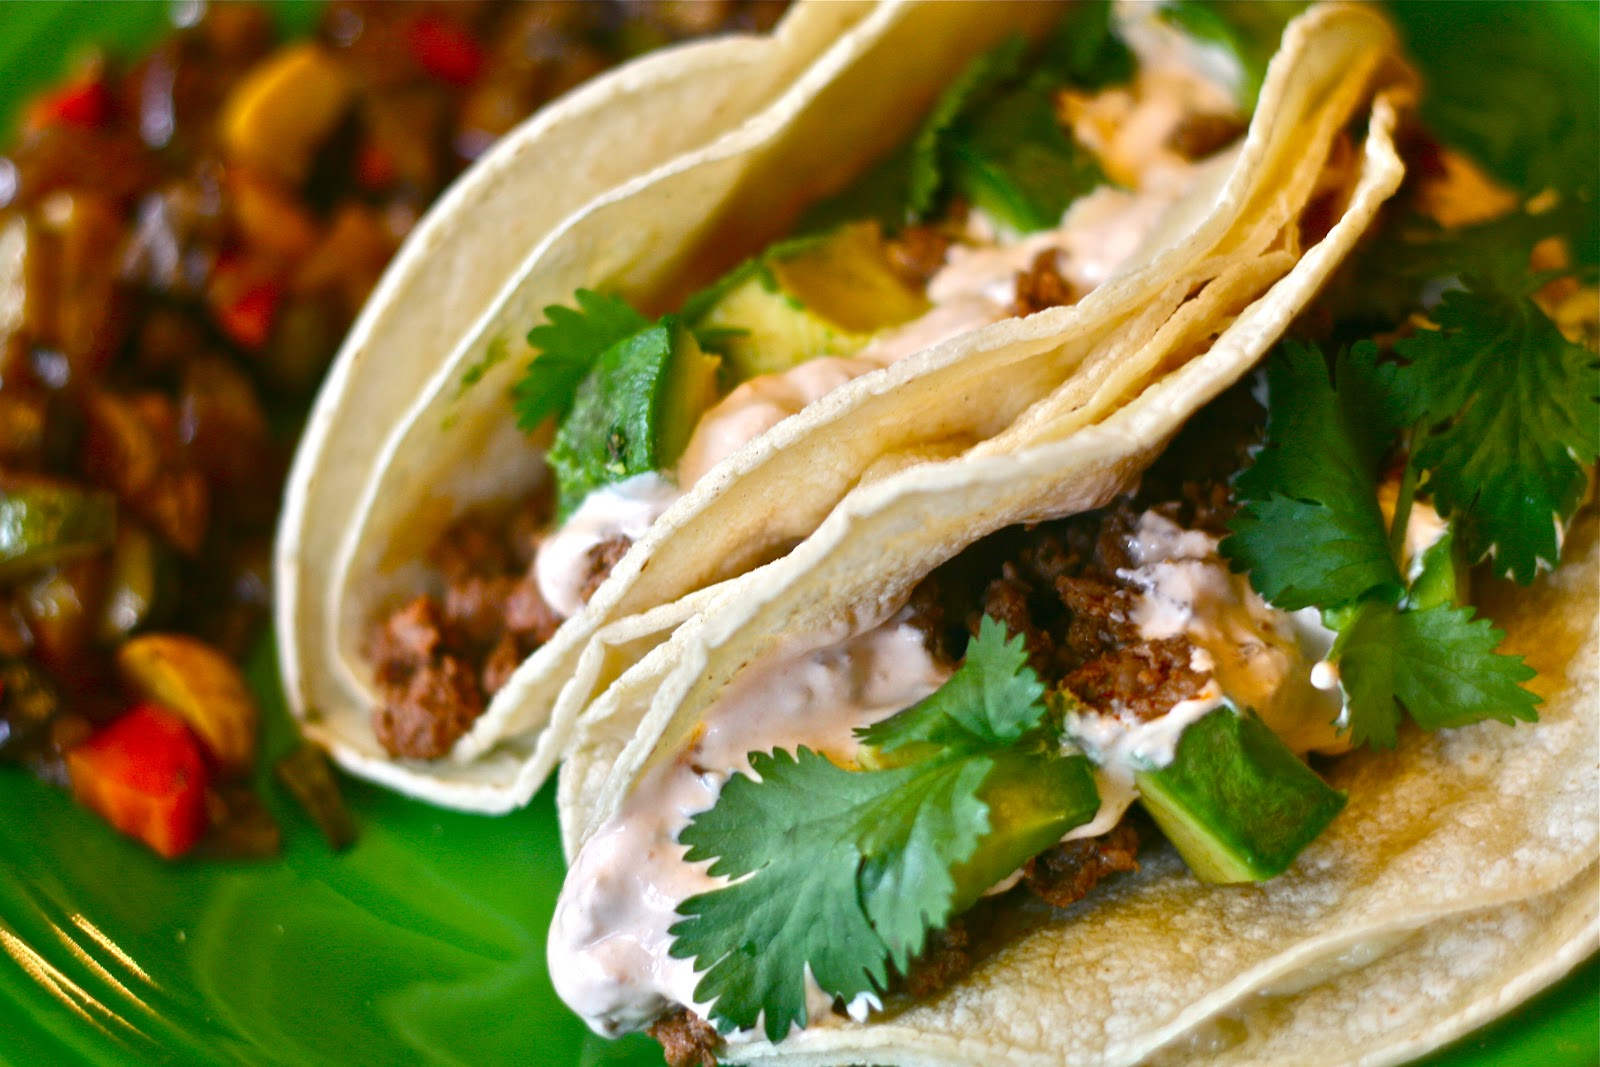 In the Kitchen: Venison Tacos